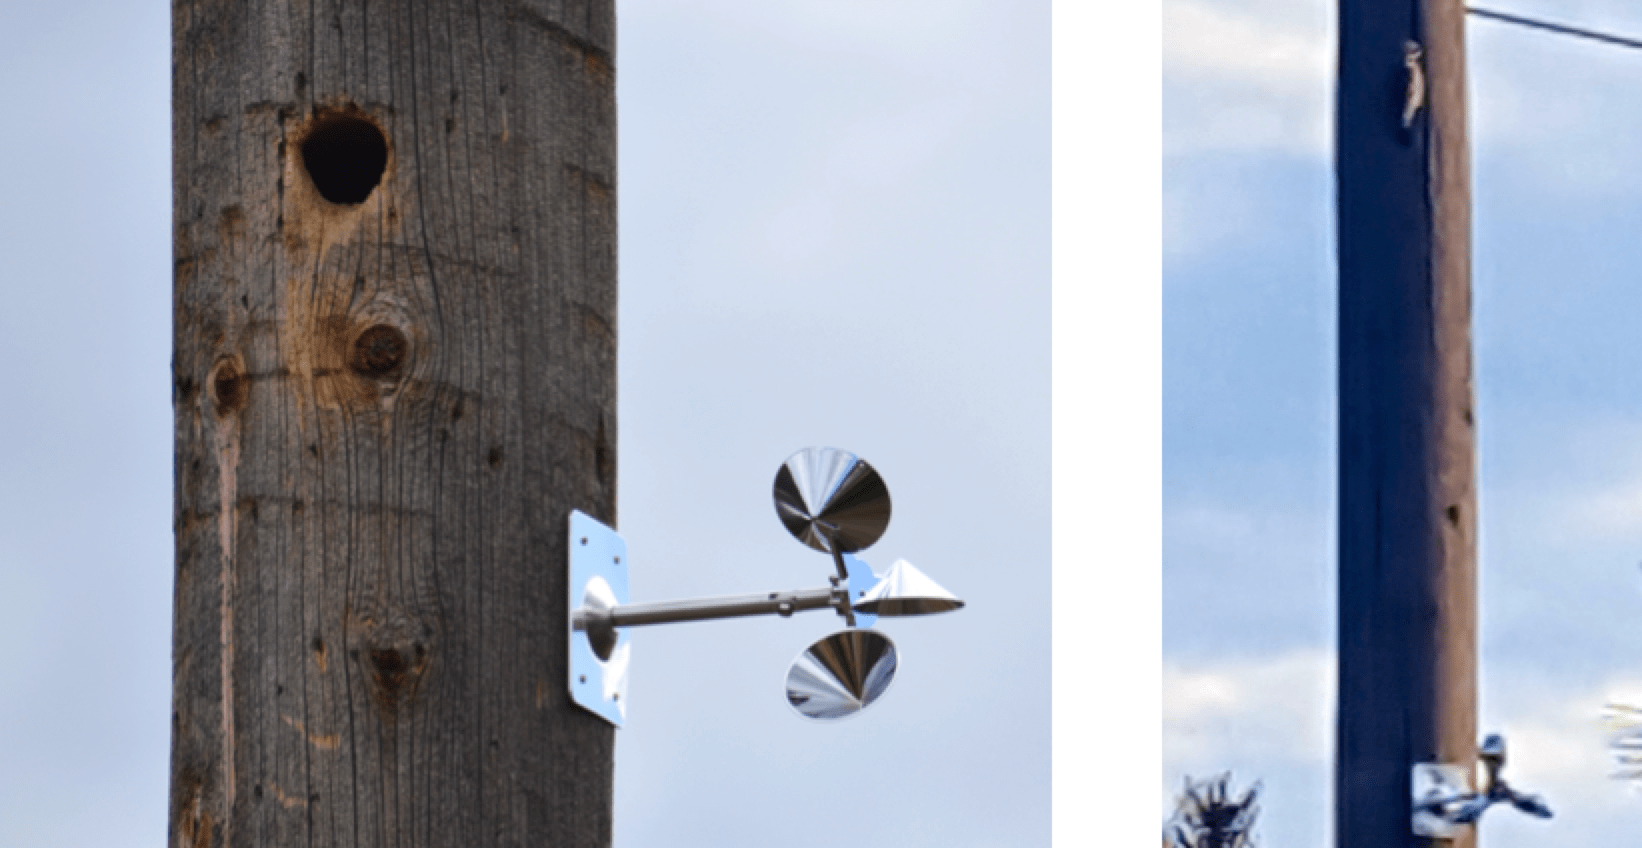 Pole mounted 'woodpecker discouragers' have not proven effective as long-term deterrents. See photo at right (photo courtesy FortisBC) with bird just above rotating device. bird Managing Bird Damage to Utility Structures Pole mounted  E2 80 98woodpecker discouragers E2 80 99 have not proven effective as long term deterrents